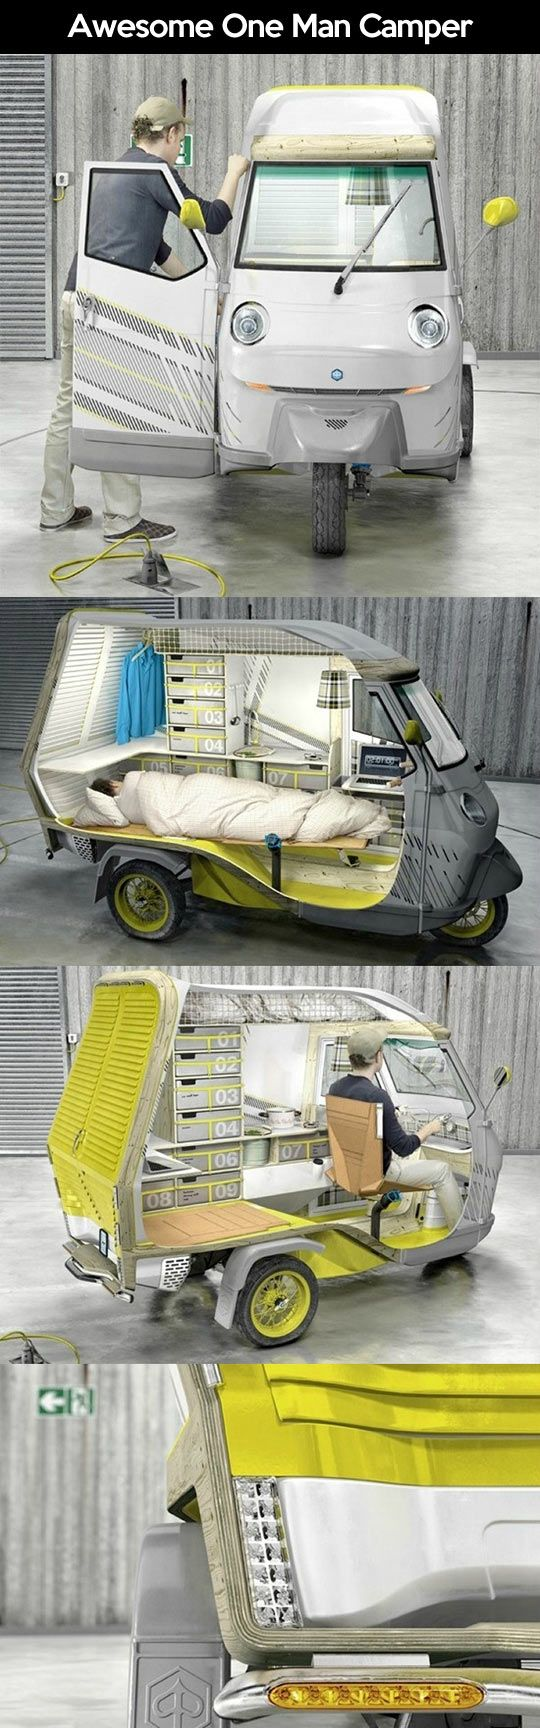 Not quite whats on this  if electric could solve the  but its pretty cool right?